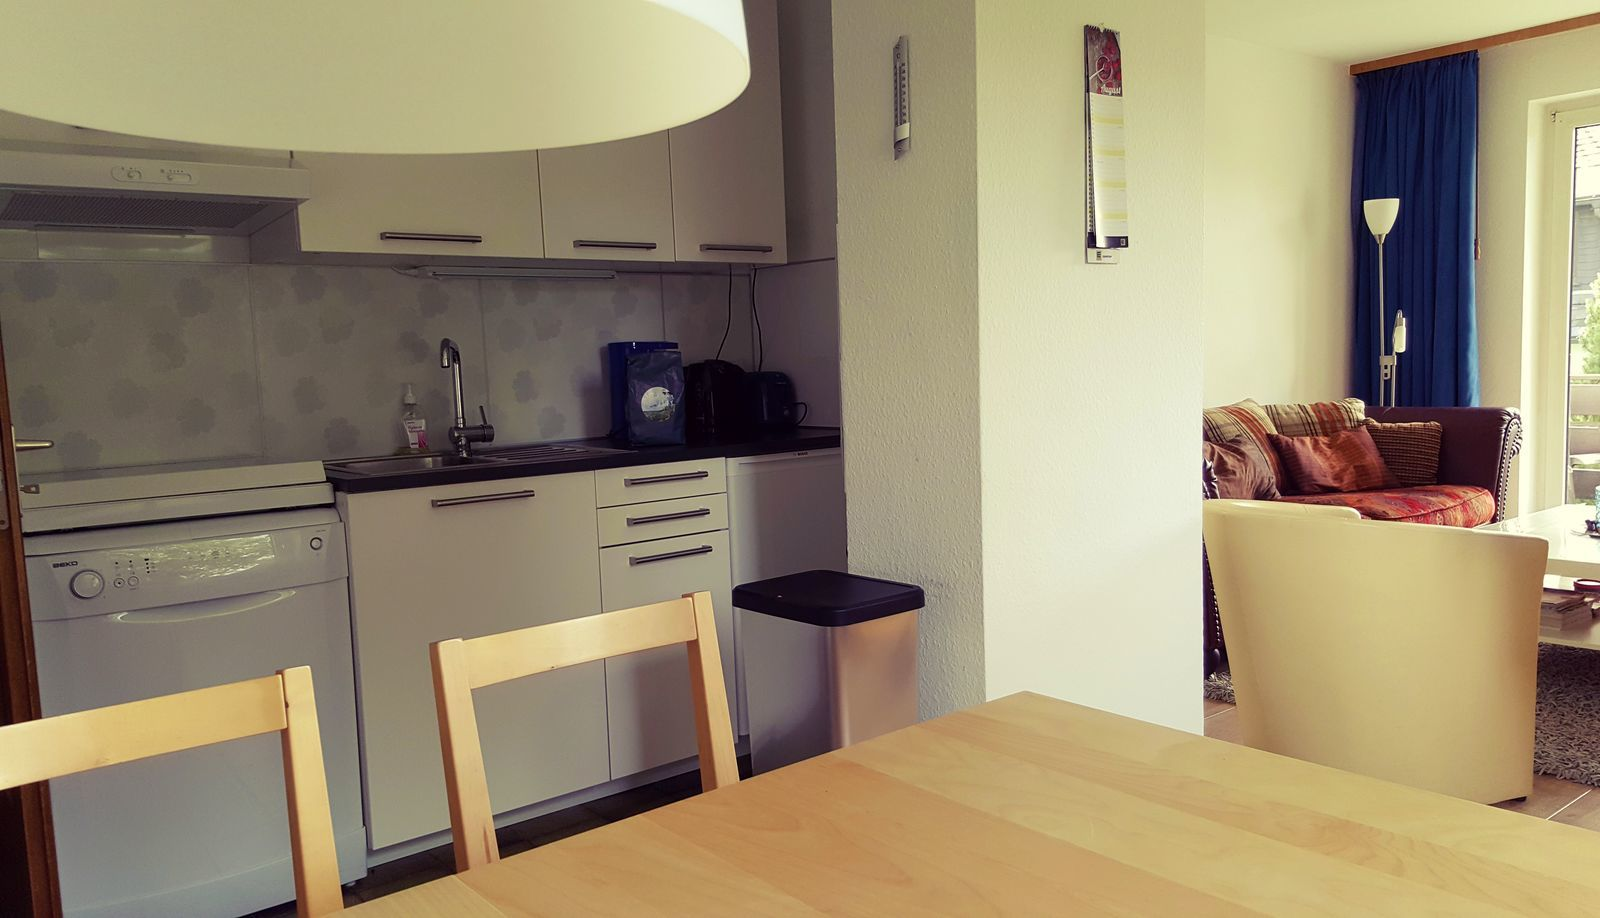 Apartment - Lenneblick 2-G